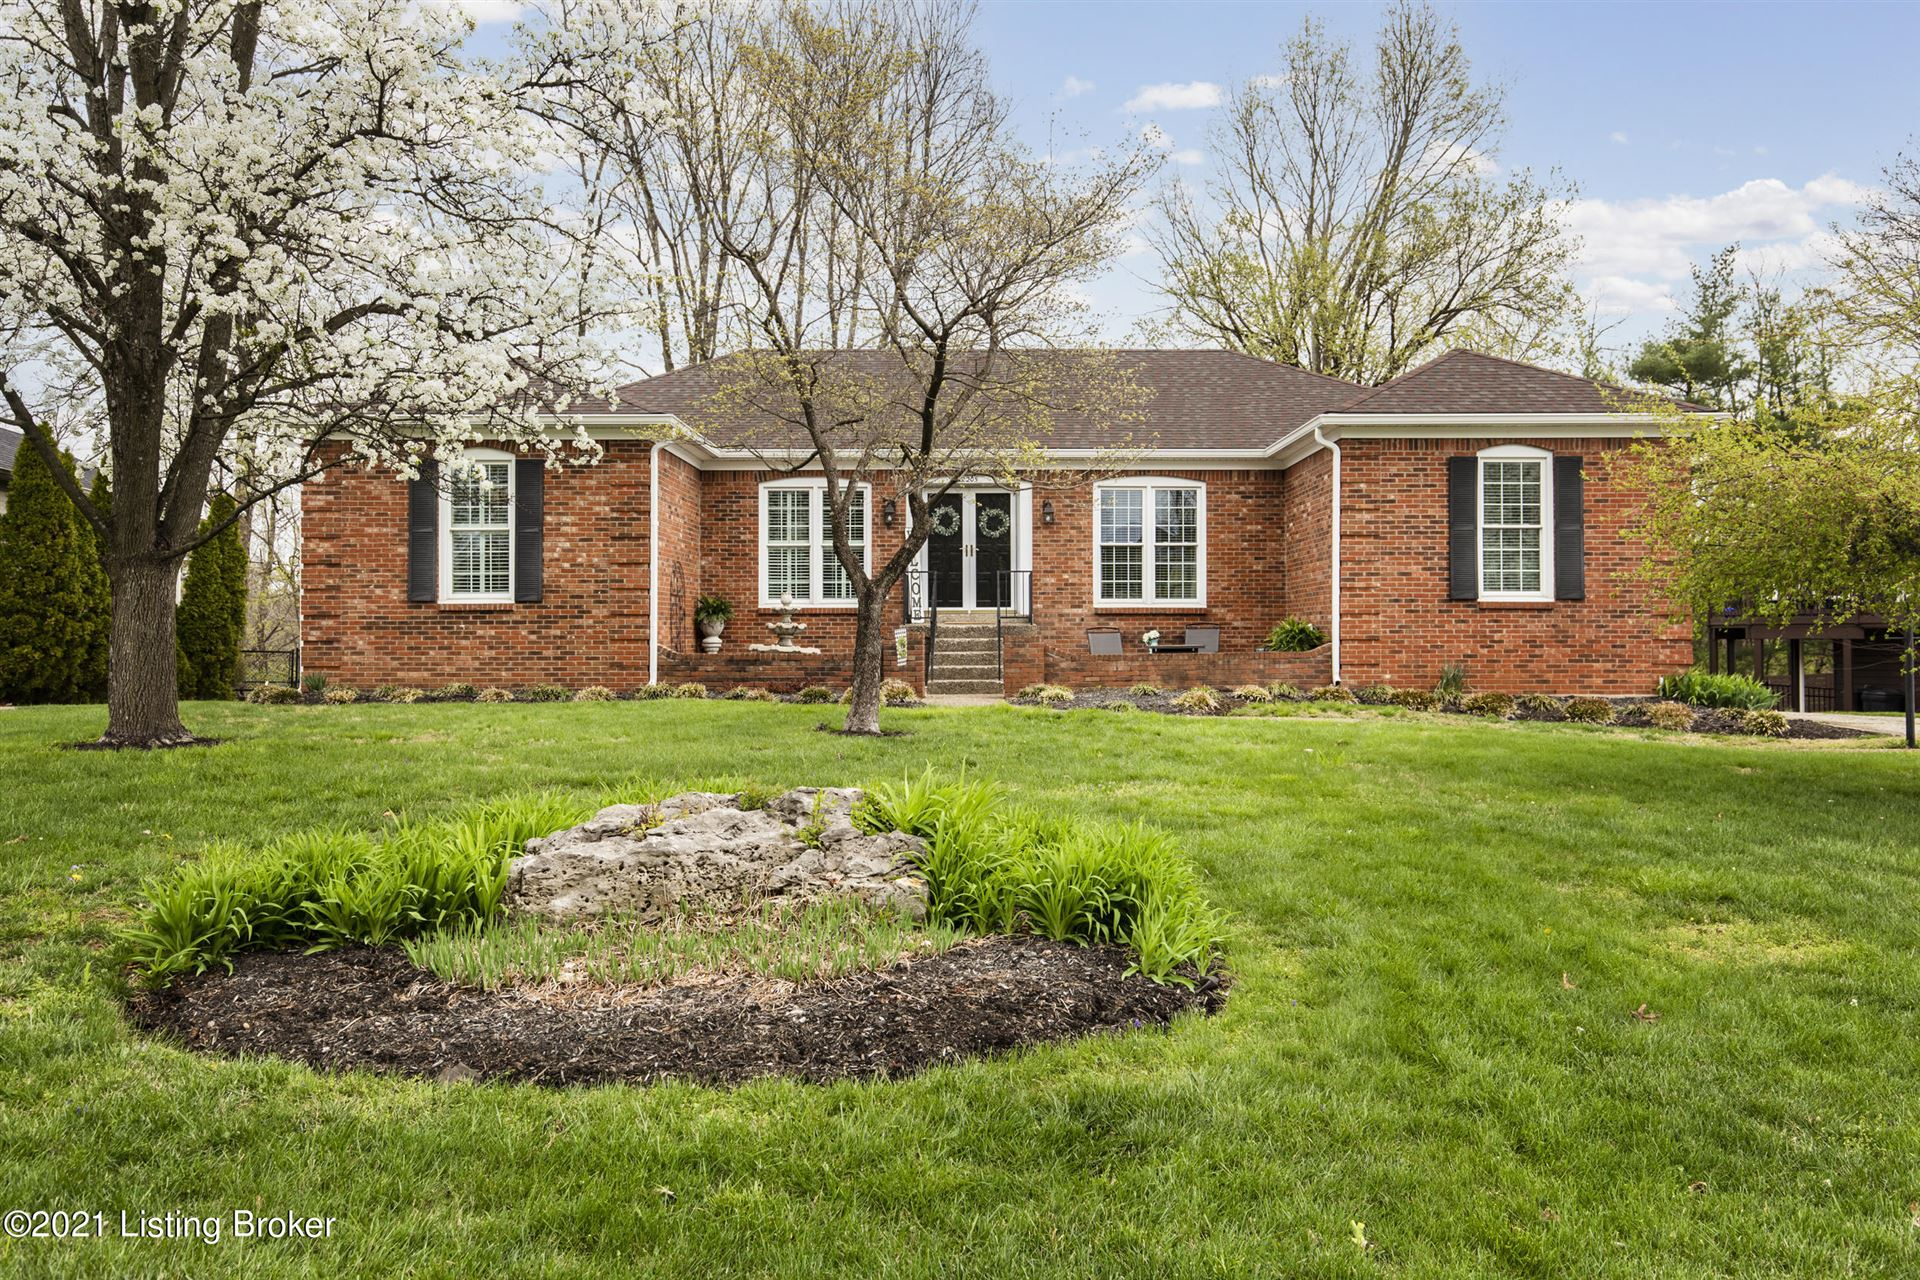 Photo for 2205 Bell Tavern Ct, Louisville, KY 40207 (MLS # 1582716)